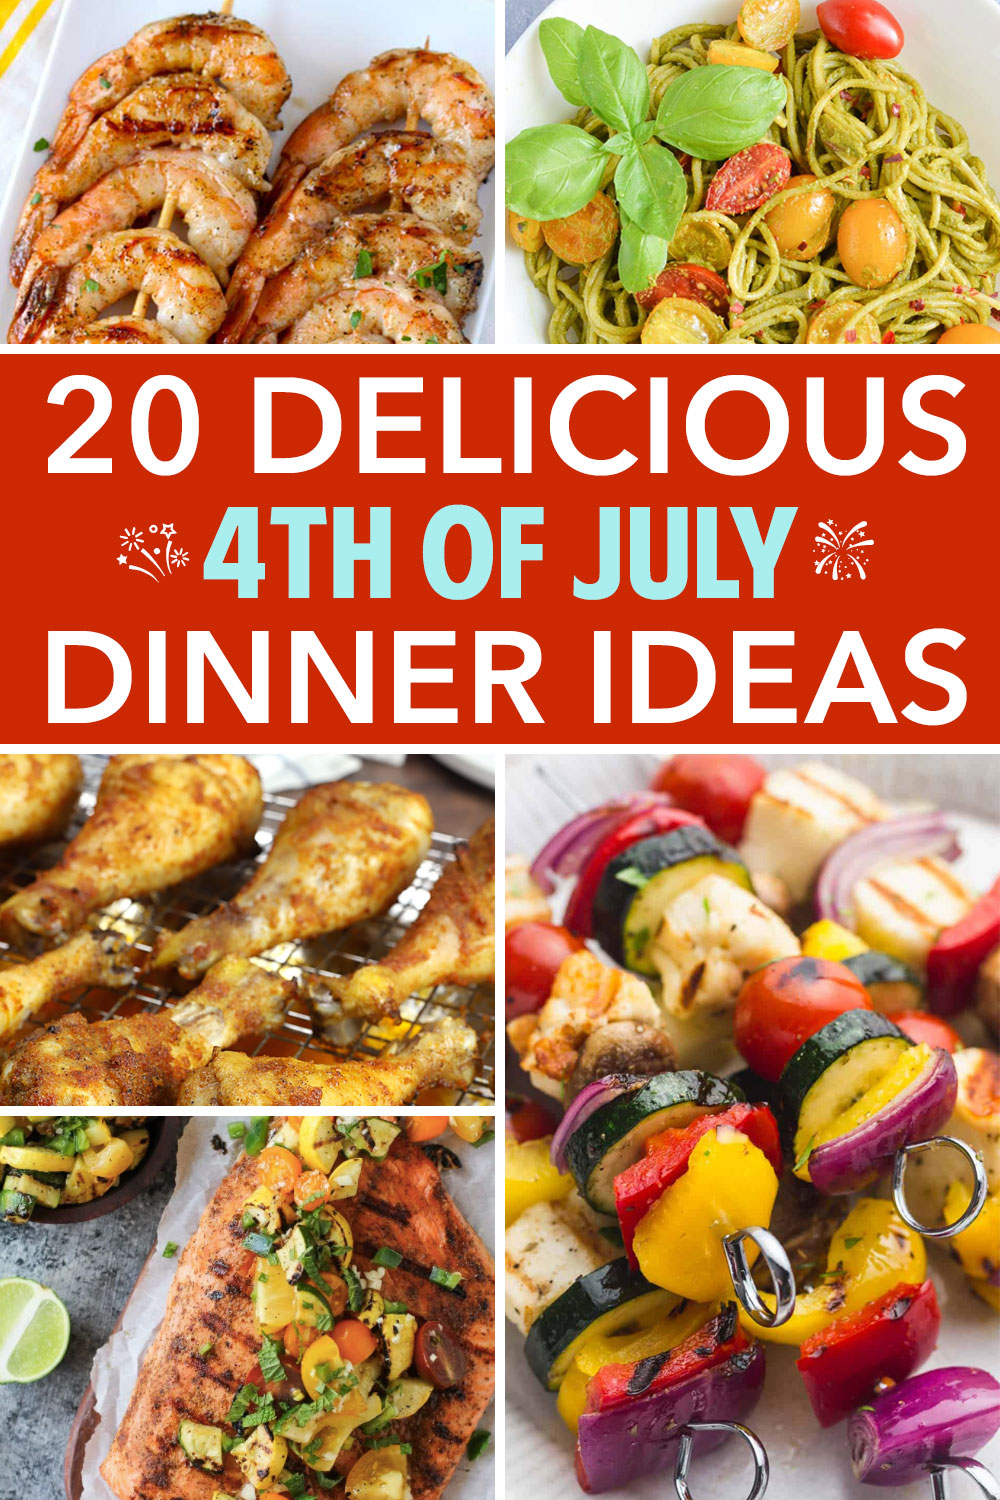 20 recipes for 4th of July dinner ideas.